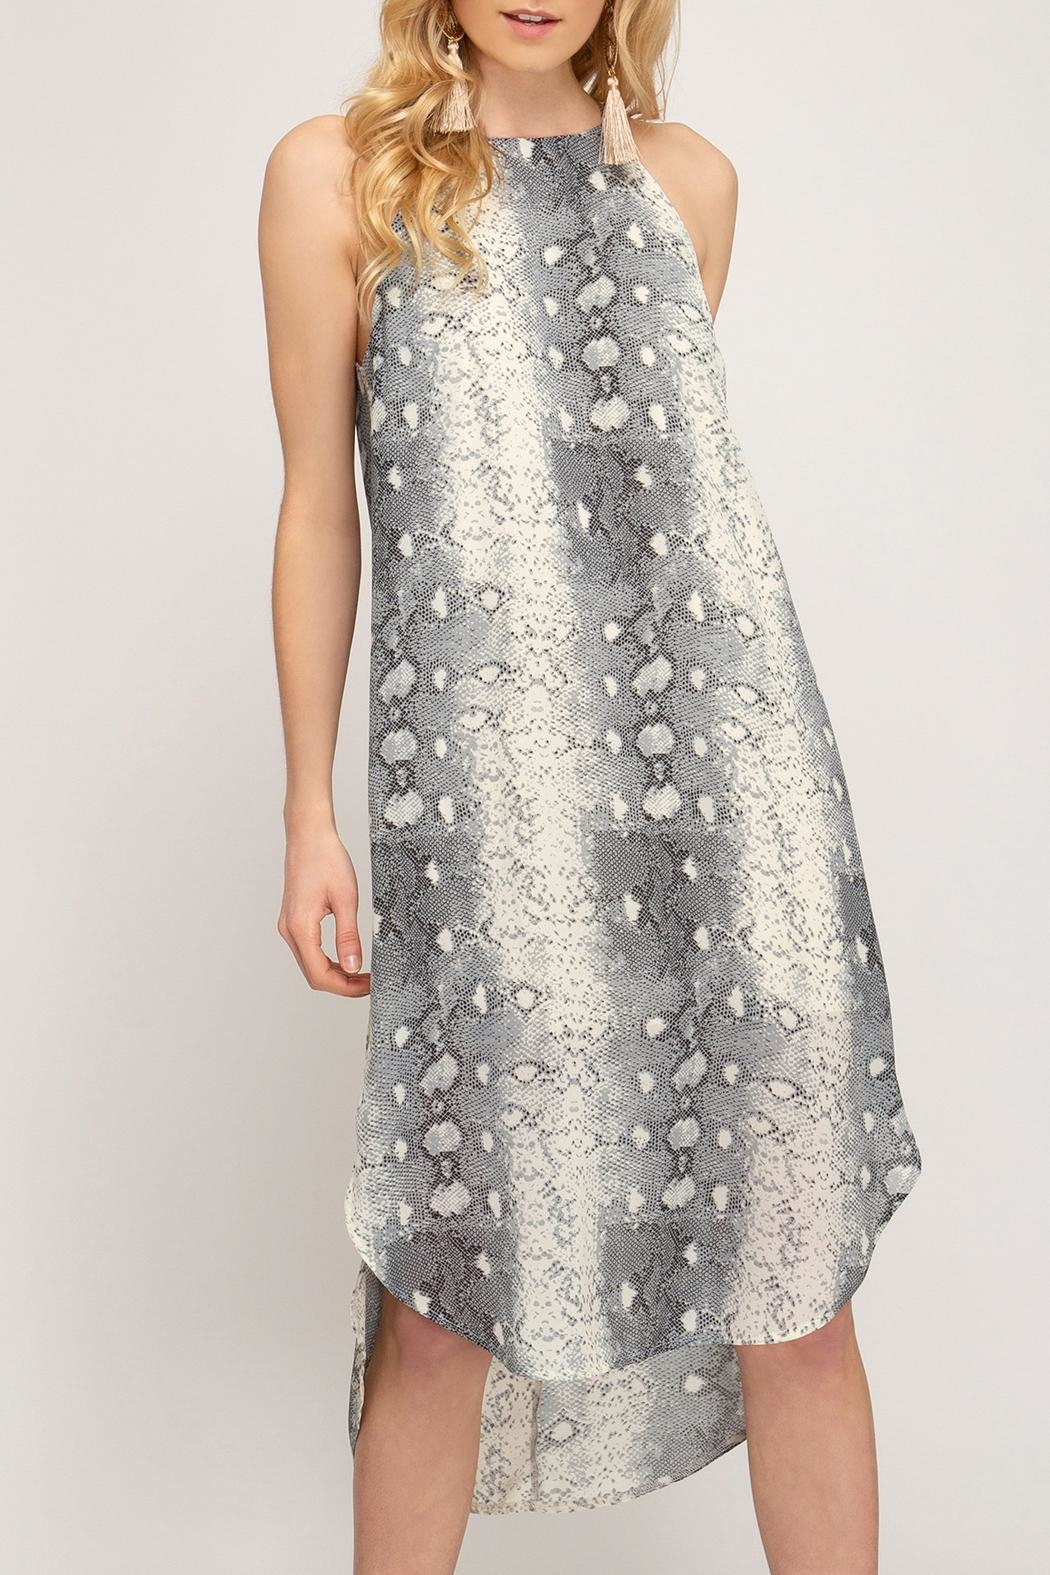 She + Sky Snakeskin Slip Dress - Main Image